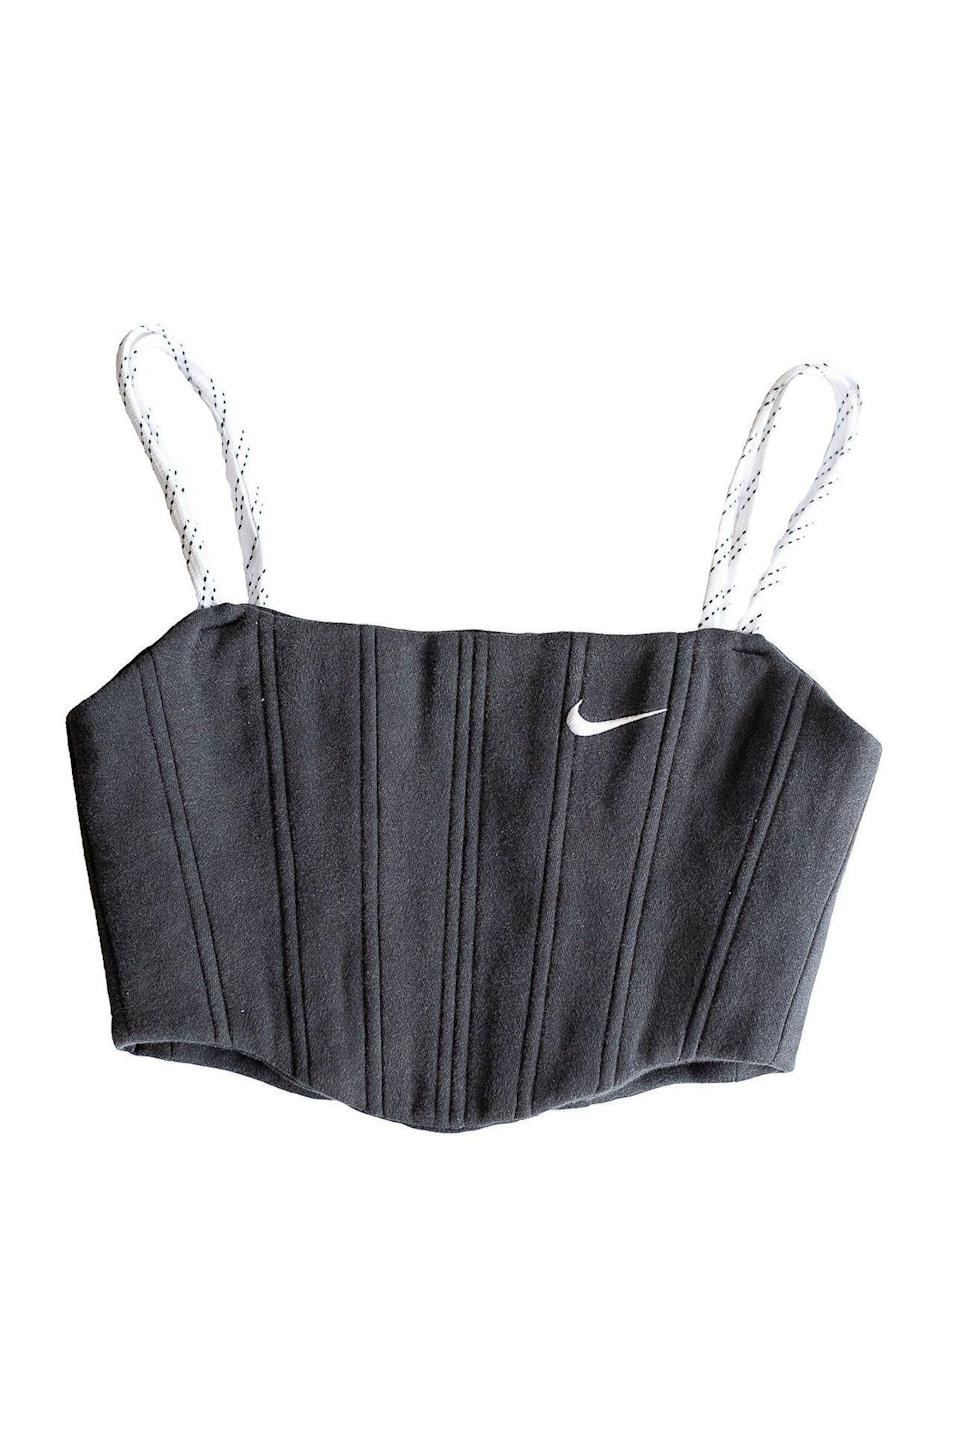 "<p><strong>almost.on.time</strong></p><p>almostontimesf.com</p><p><strong>$150.00</strong></p><p><a href=""https://almostontimesf.com/products/basic-black-nike-sweats-corset"" rel=""nofollow noopener"" target=""_blank"" data-ylk=""slk:SHOP IT"" class=""link rapid-noclick-resp"">SHOP IT</a></p><p>A fitted corset made from Nike sweats? Absolutely. These are all sold out, but stay on top of the drops for one-of-a-kind sexy sportswear that will make everyone you know insanely jealous.</p>"